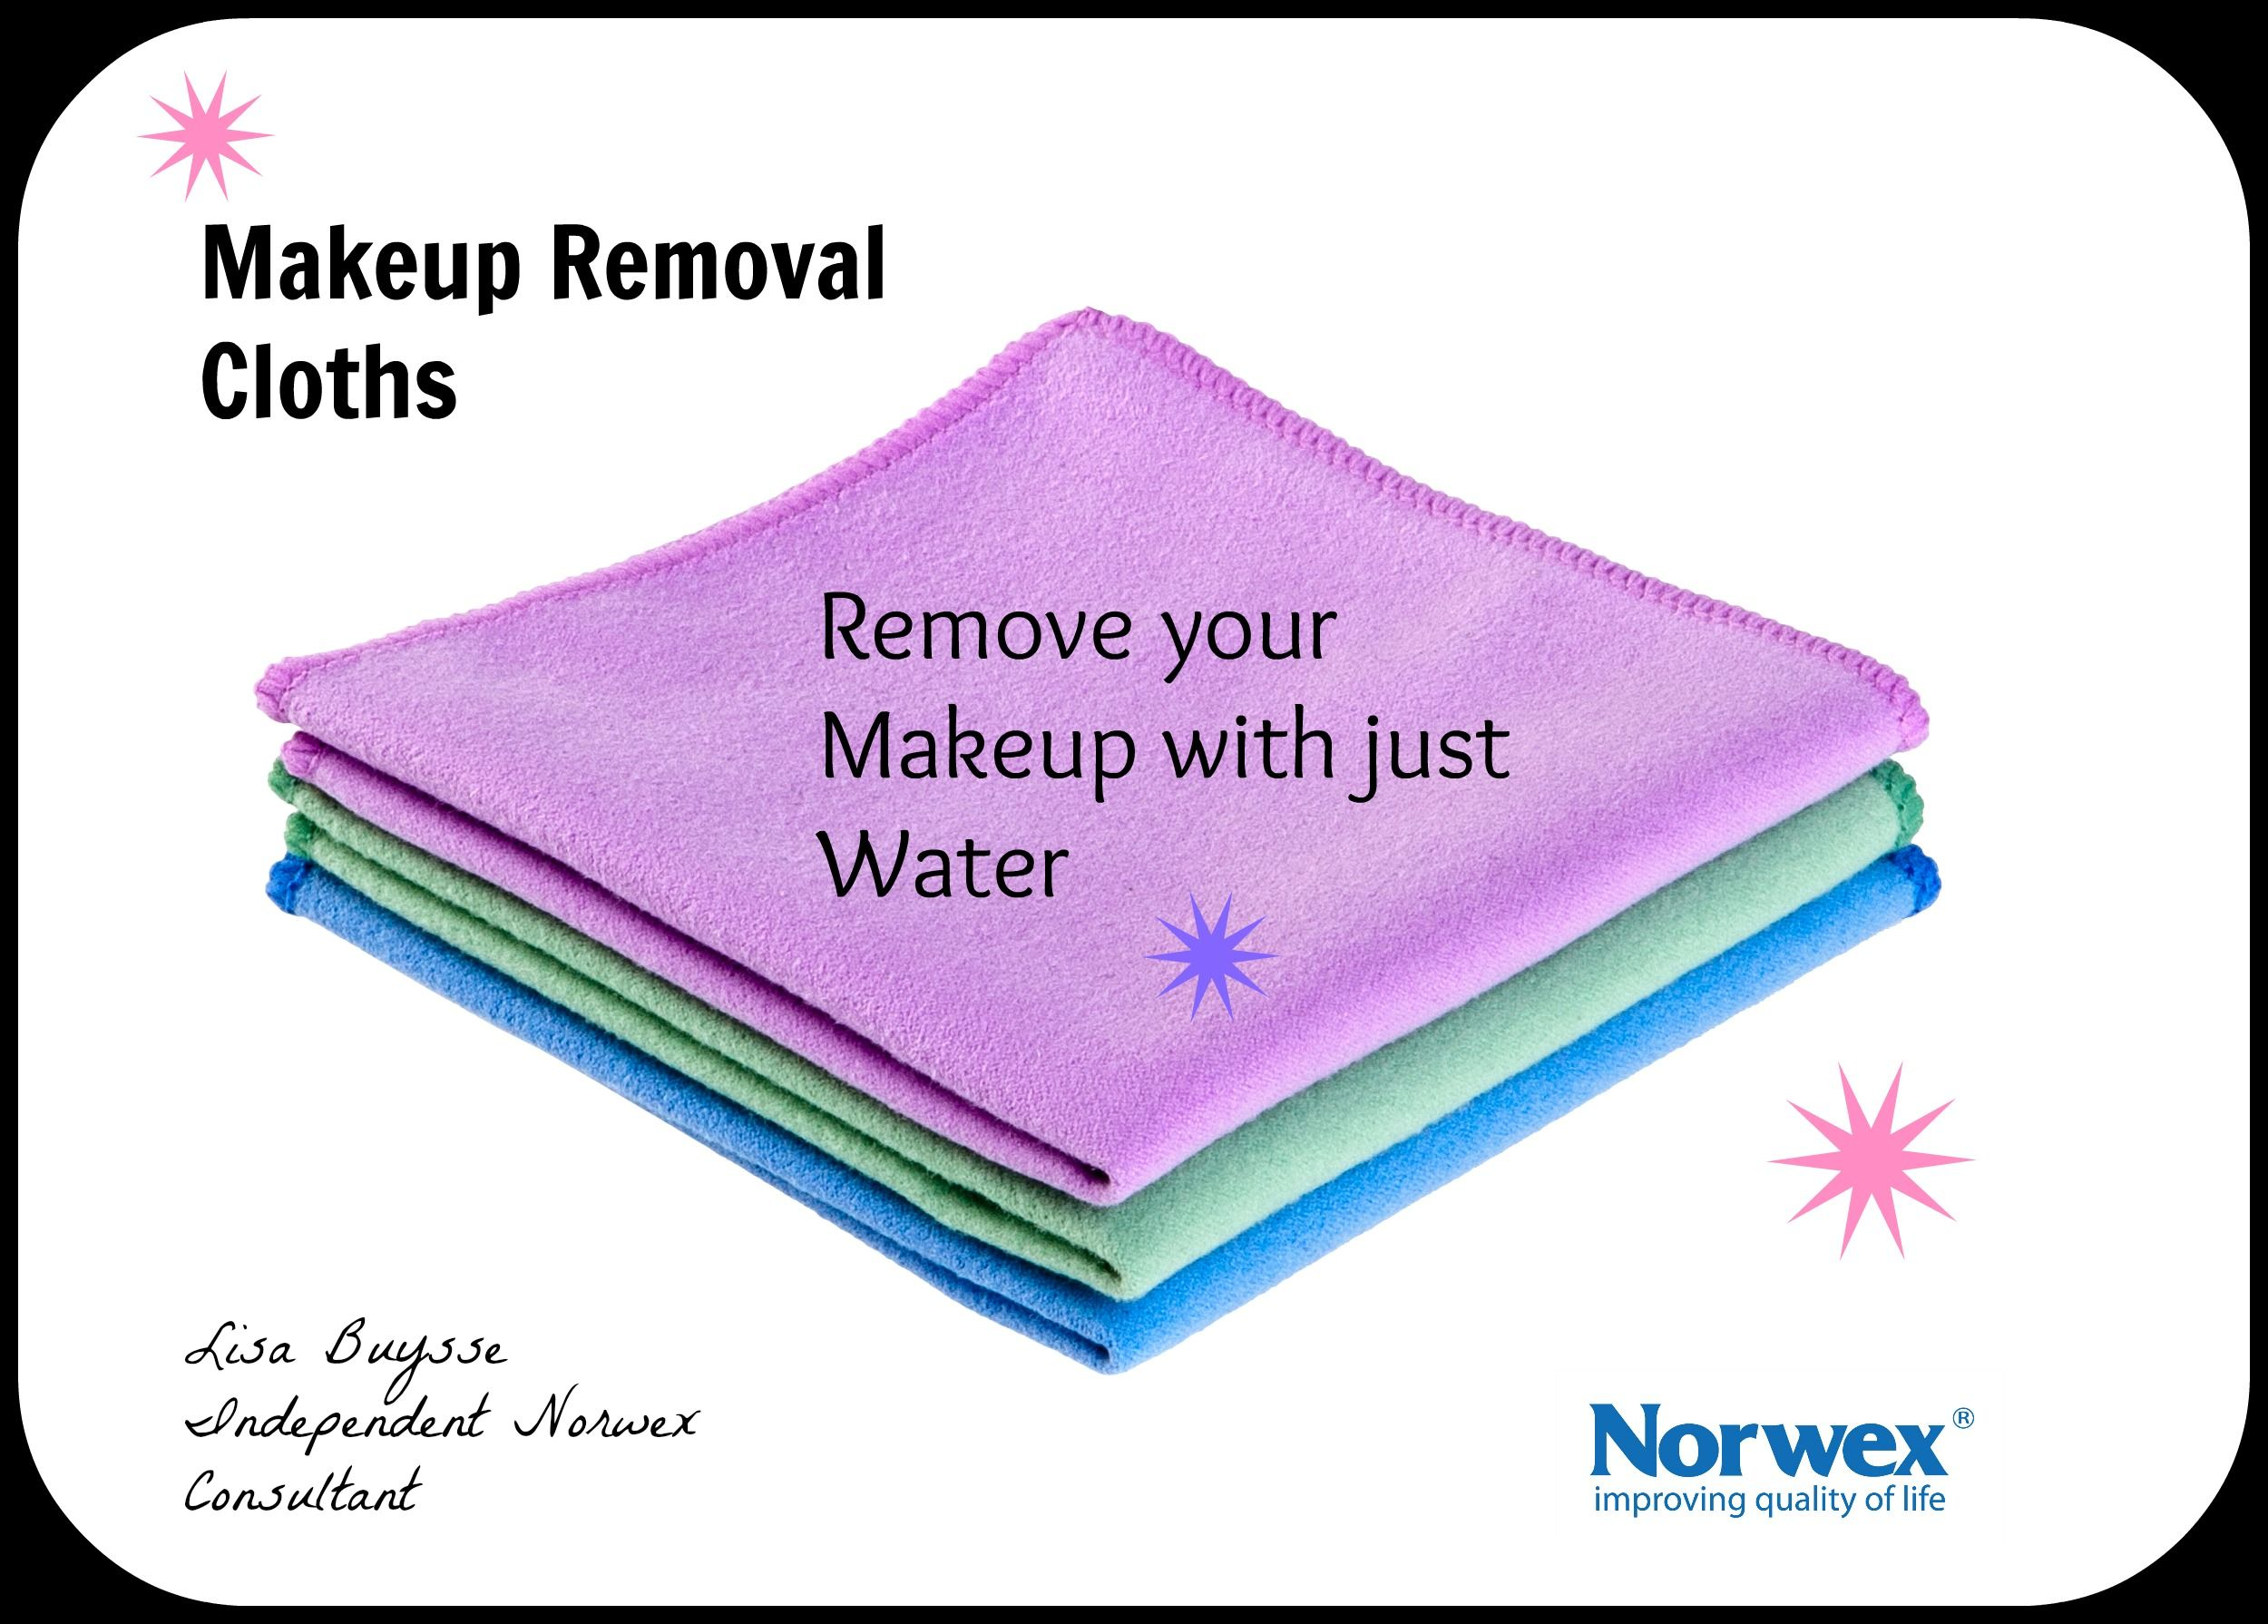 Norwex Makeup Removal Cloths use with water to remove